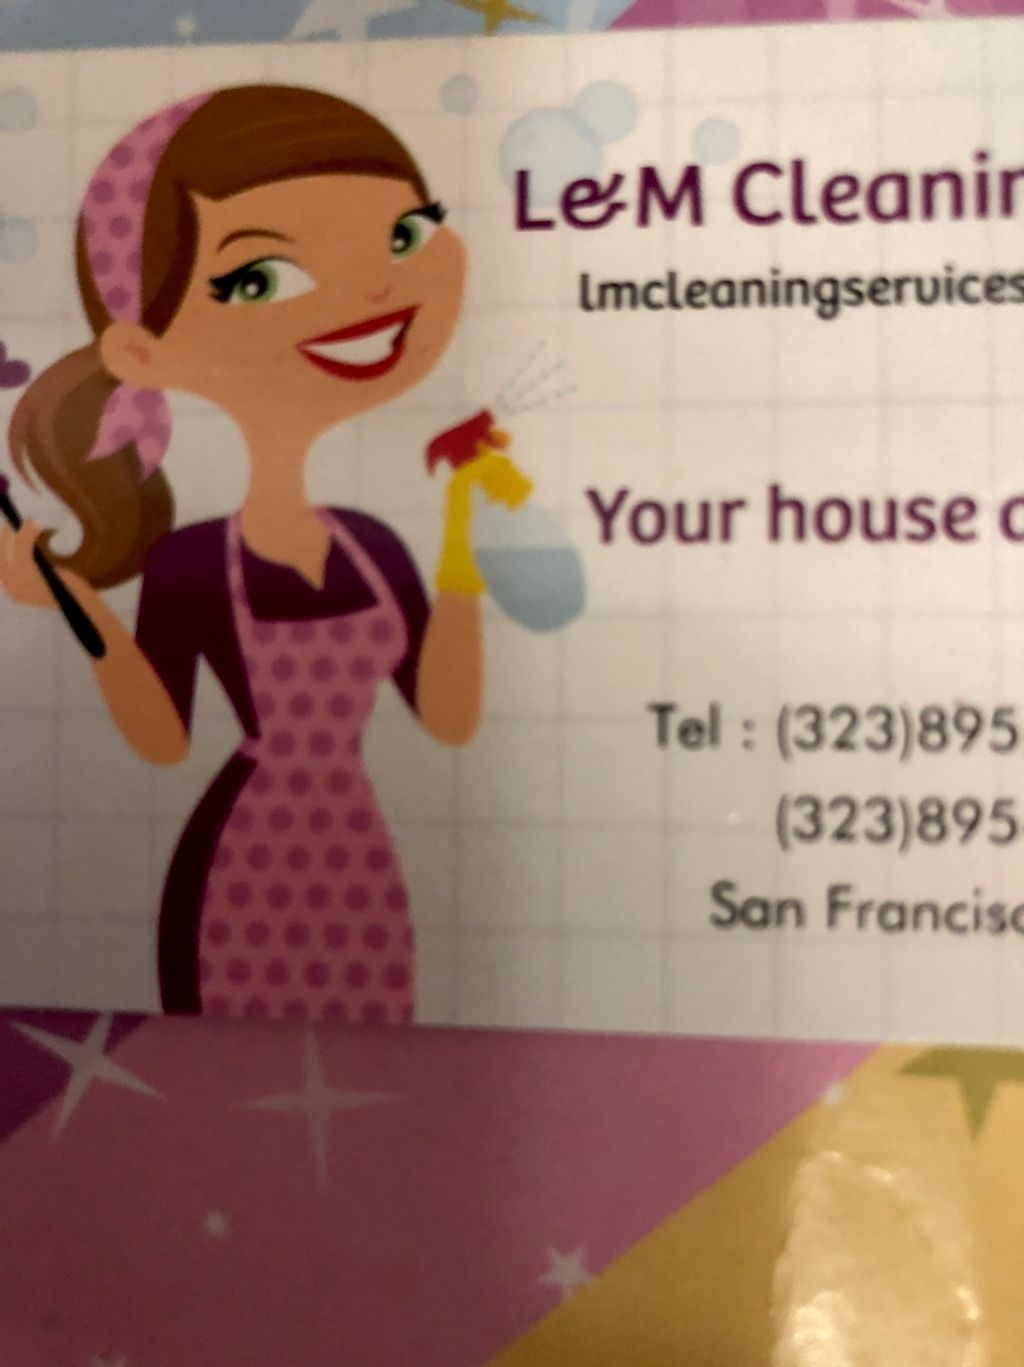 L&M Cleaning Services